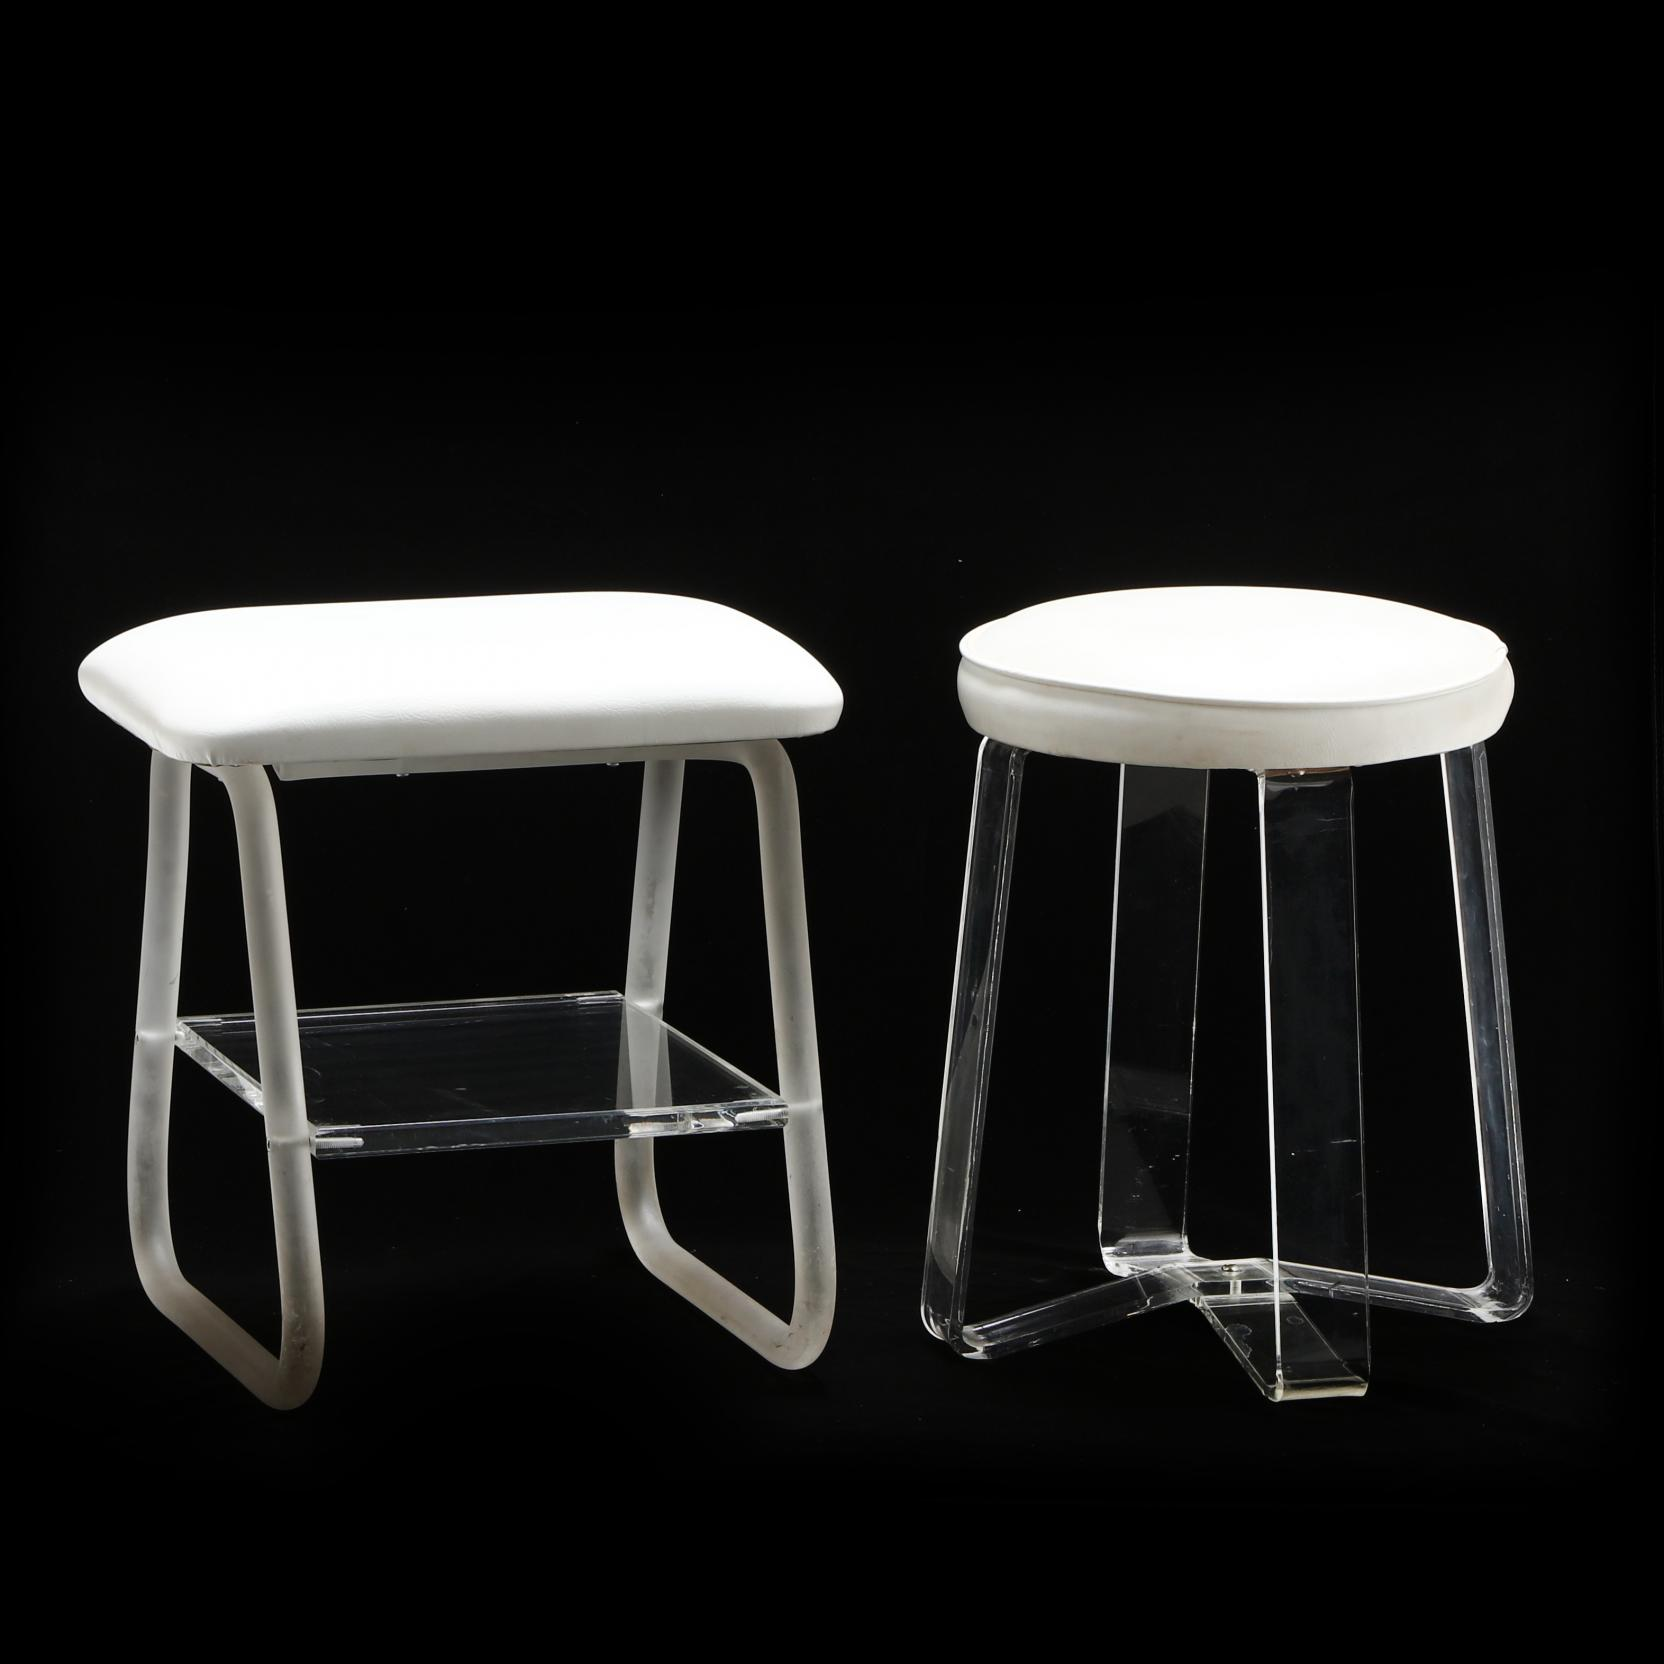 two-modernist-acrylic-stools